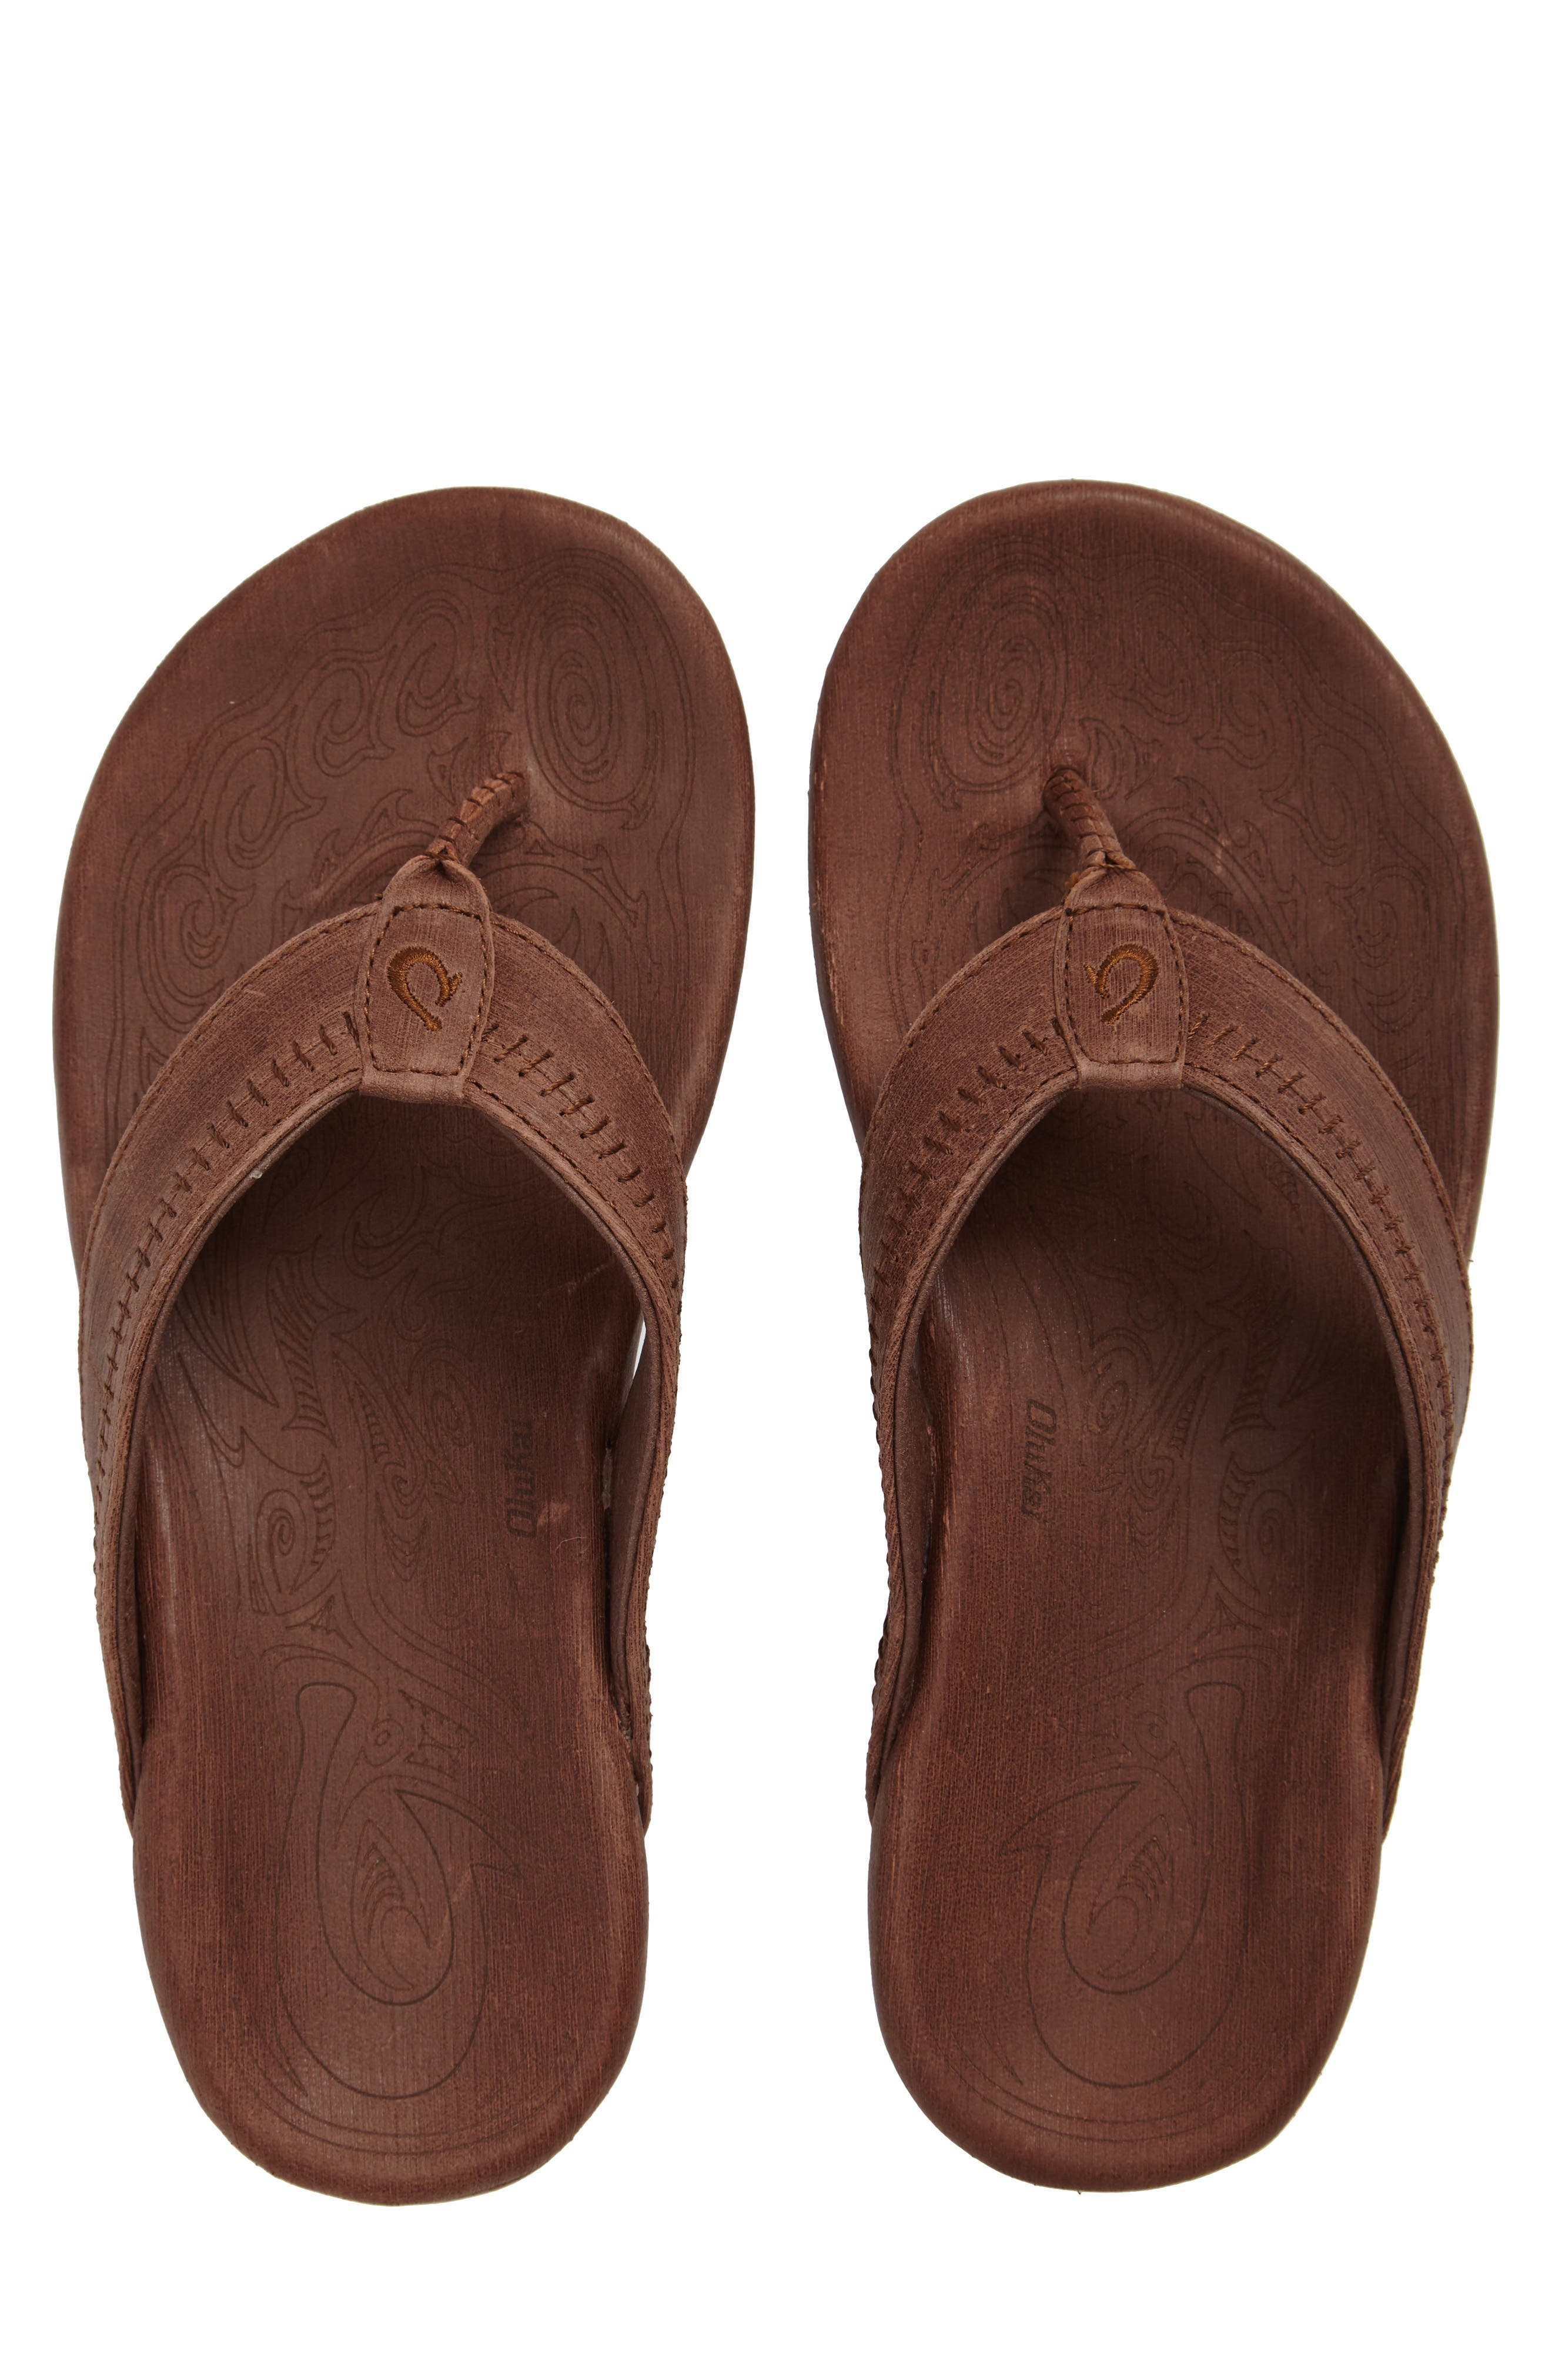 'Hiapo' Flip Flop,                             Alternate thumbnail 4, color,                             TOFFEE/ TOFFEE LEATHER